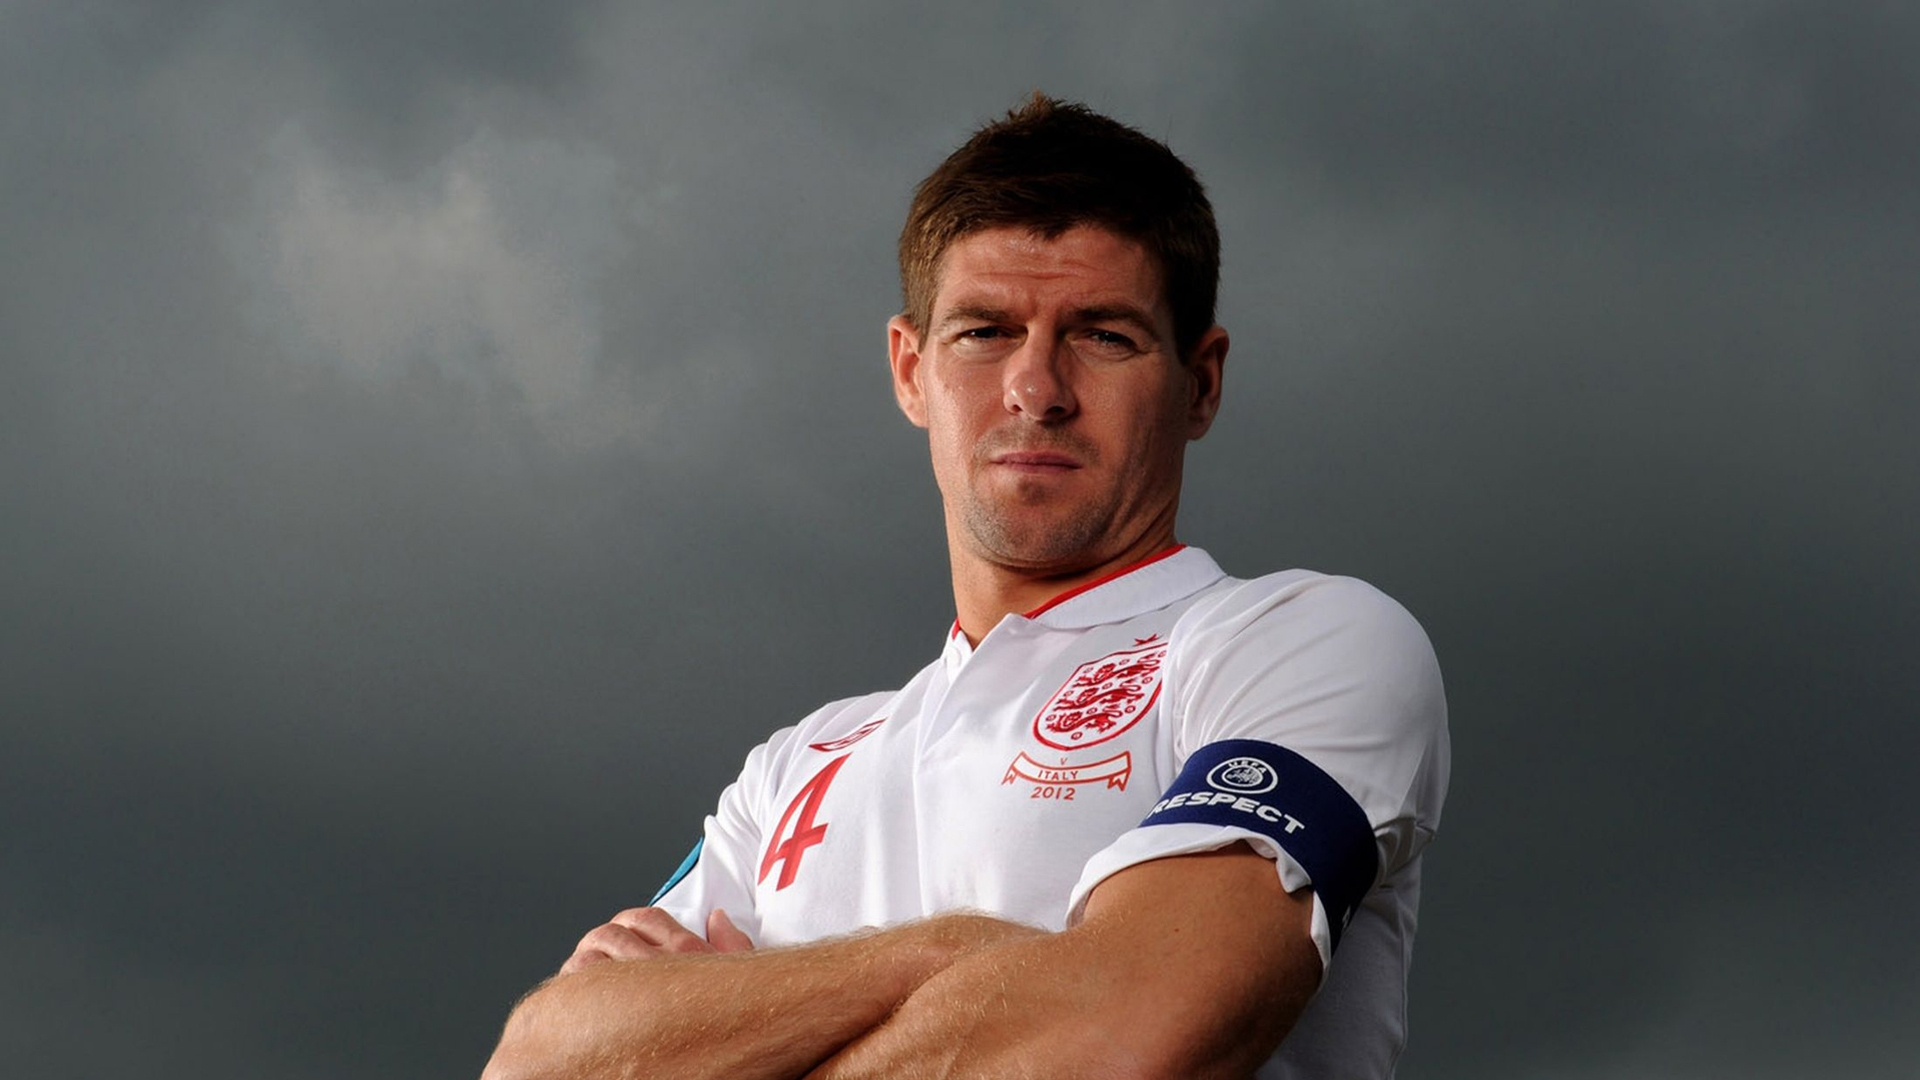 Quotes on Steven Gerrard Wet grass white posts bulging nets 1920x1080